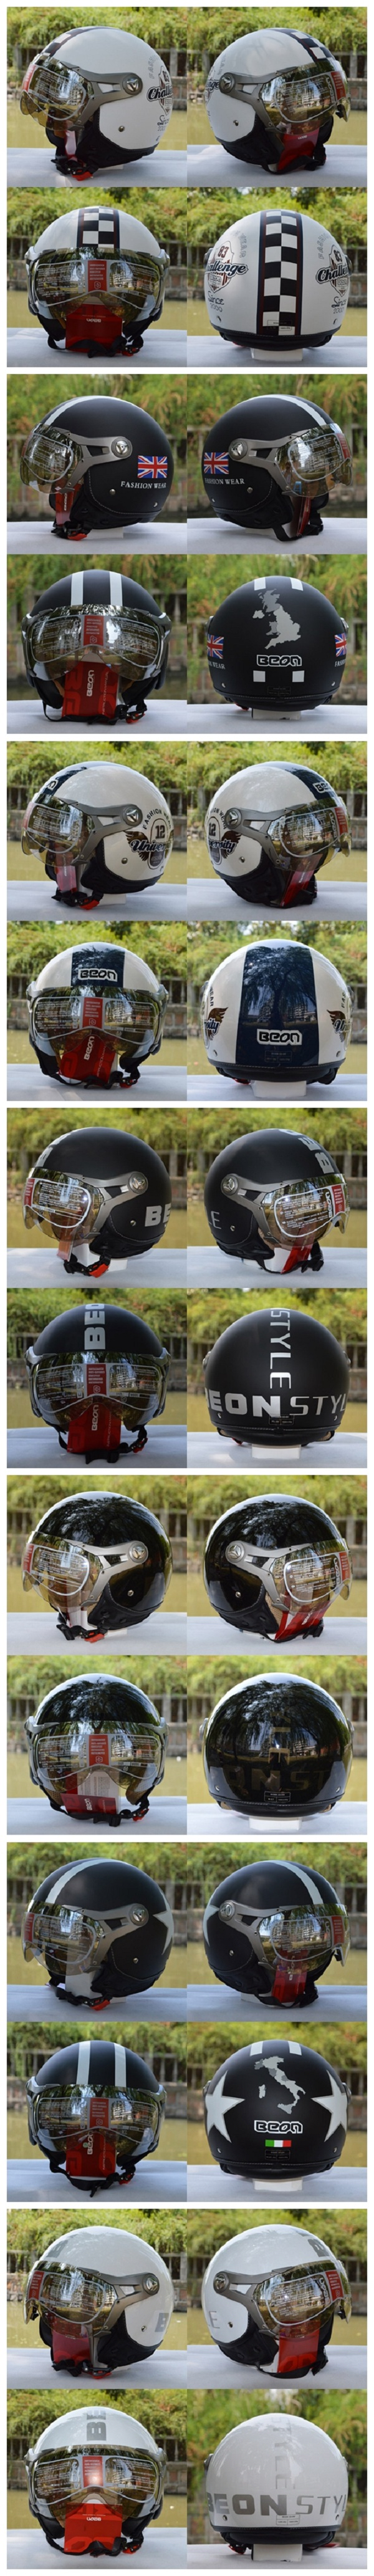 Motorcycle Air Force Half Face Helmet Jet Pilot For Harley BEON B-100